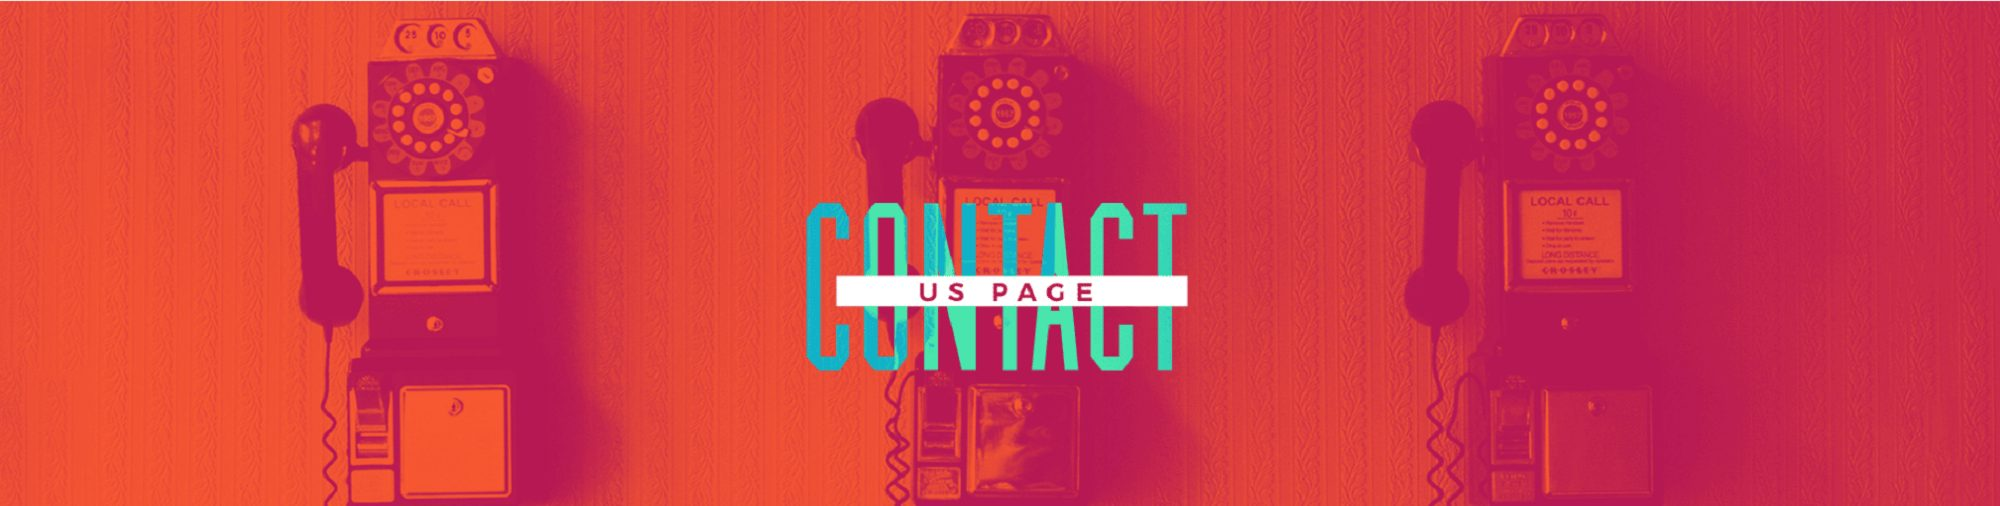 banner contact page